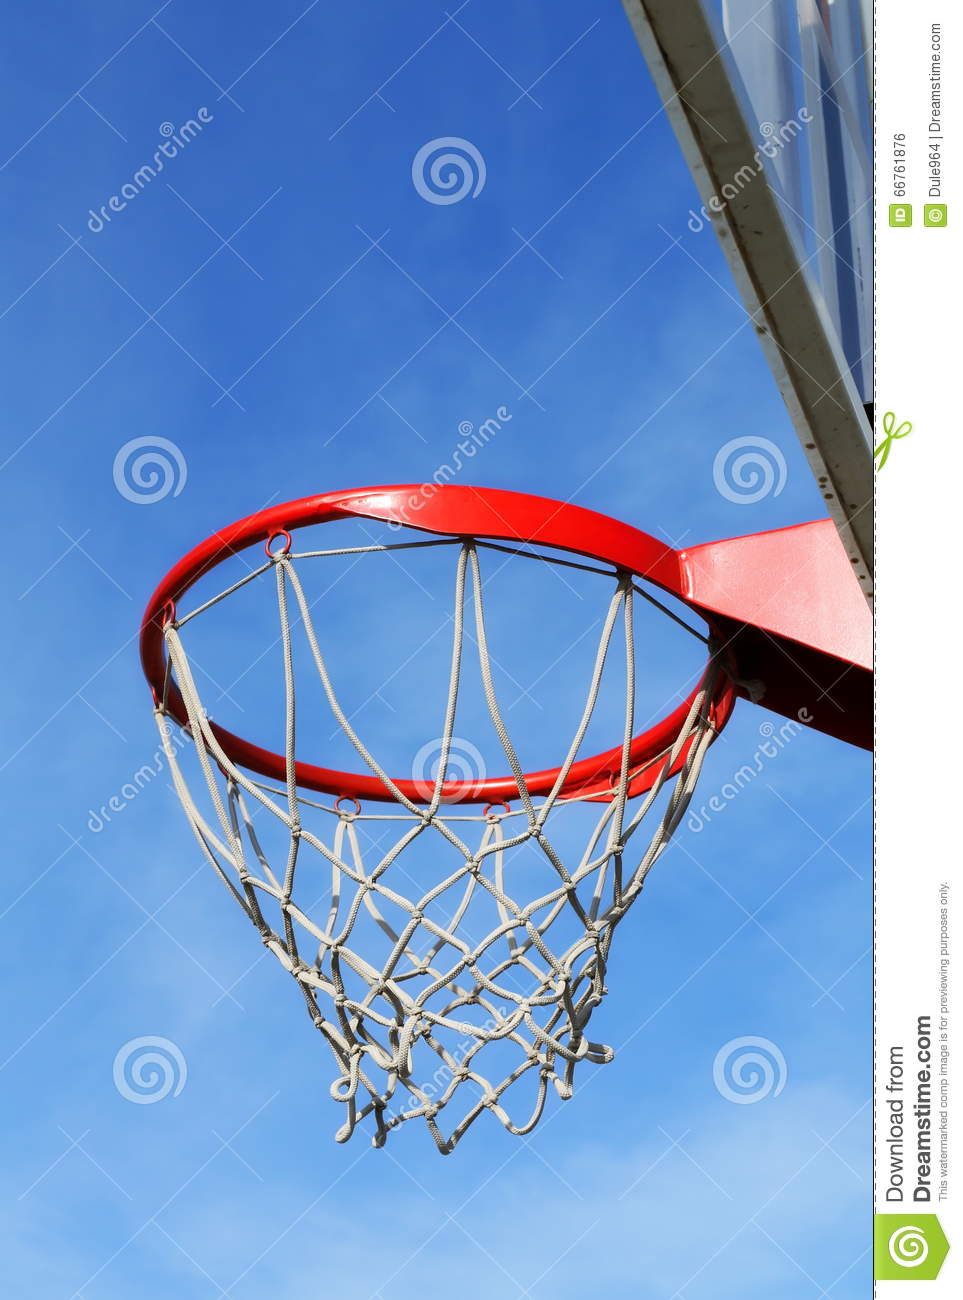 Basketball hoop transparent background